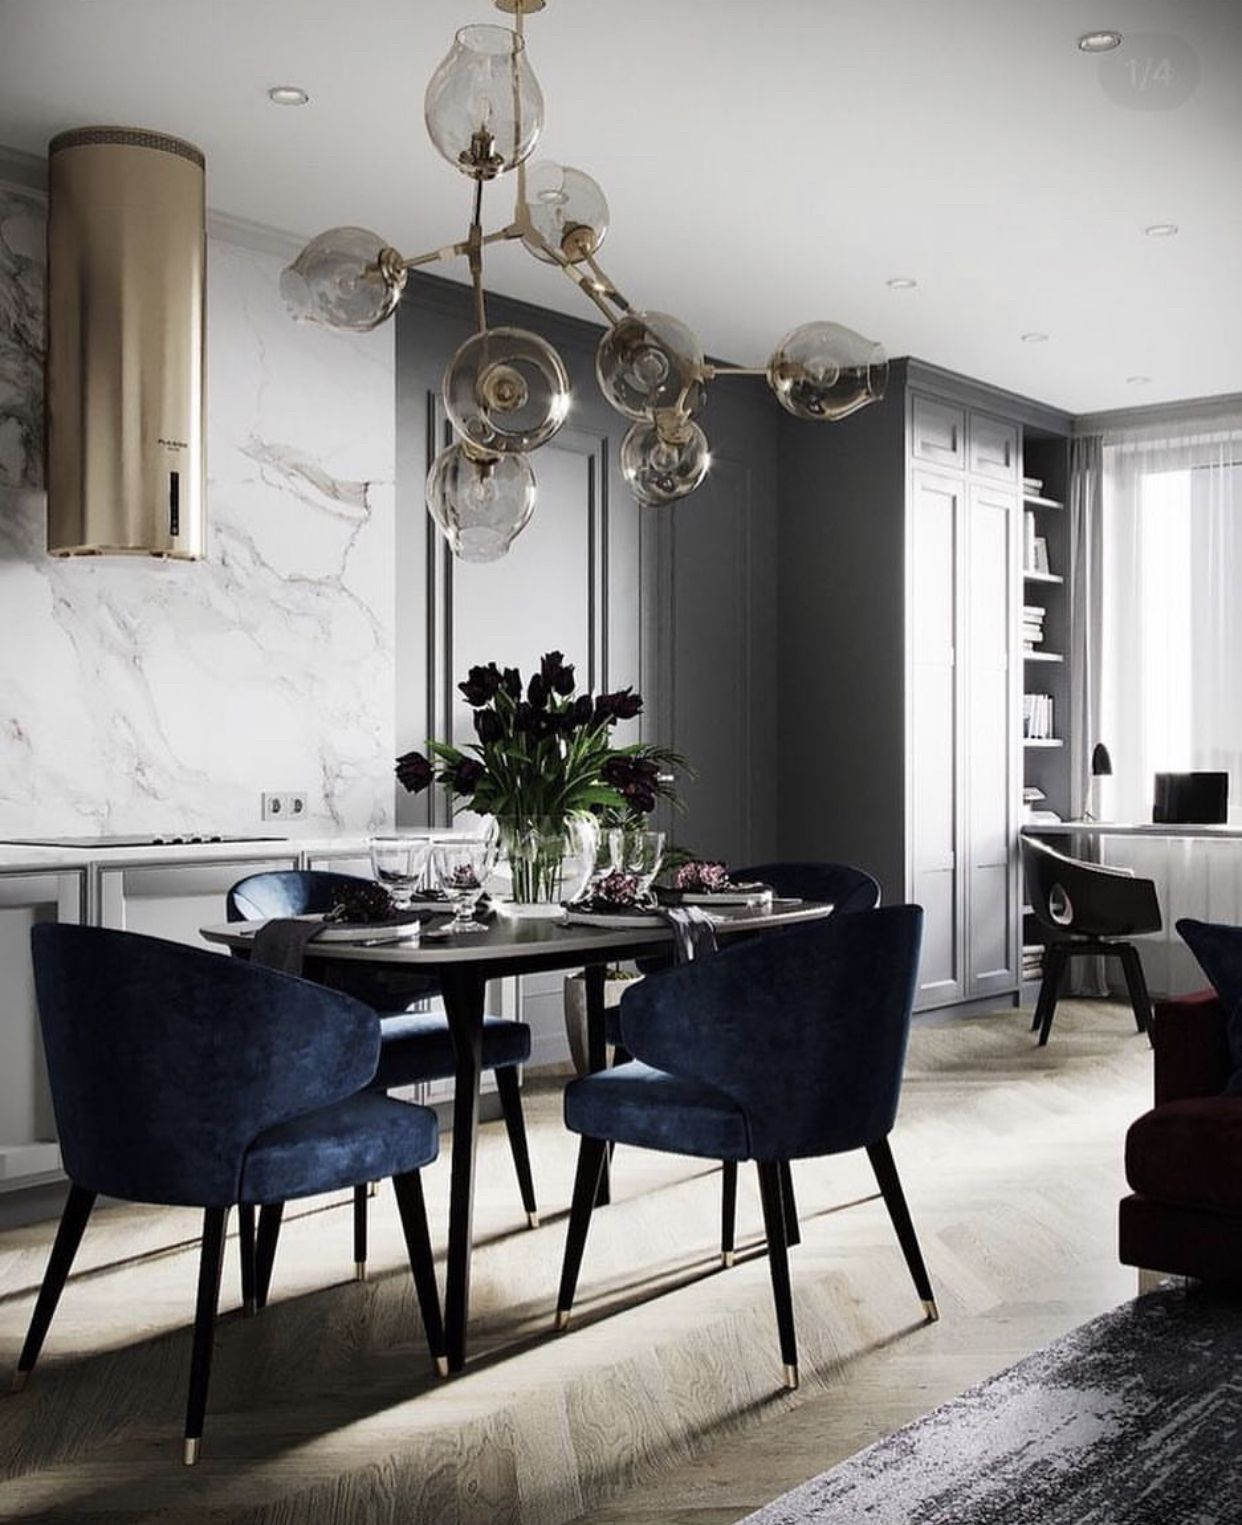 4 Principles For Creating The Perfect Dining Room